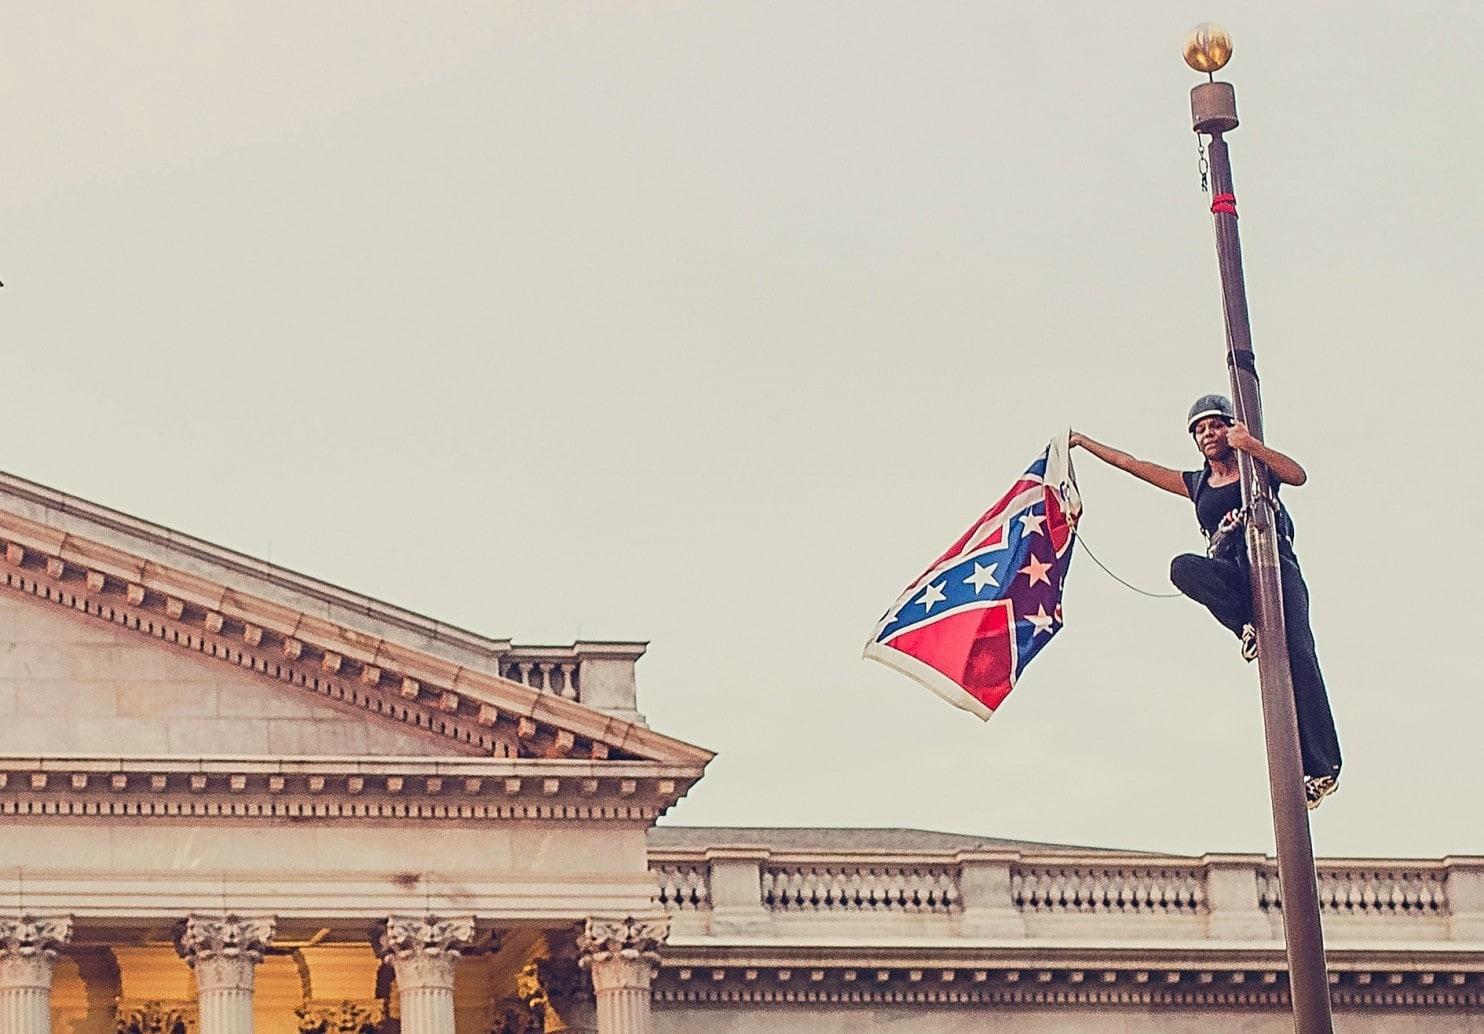 Bree Newsome takes down the Confederate flag from a pole at the Statehouse Grounds in Columbia in 2015.  Image credit: Washington Post